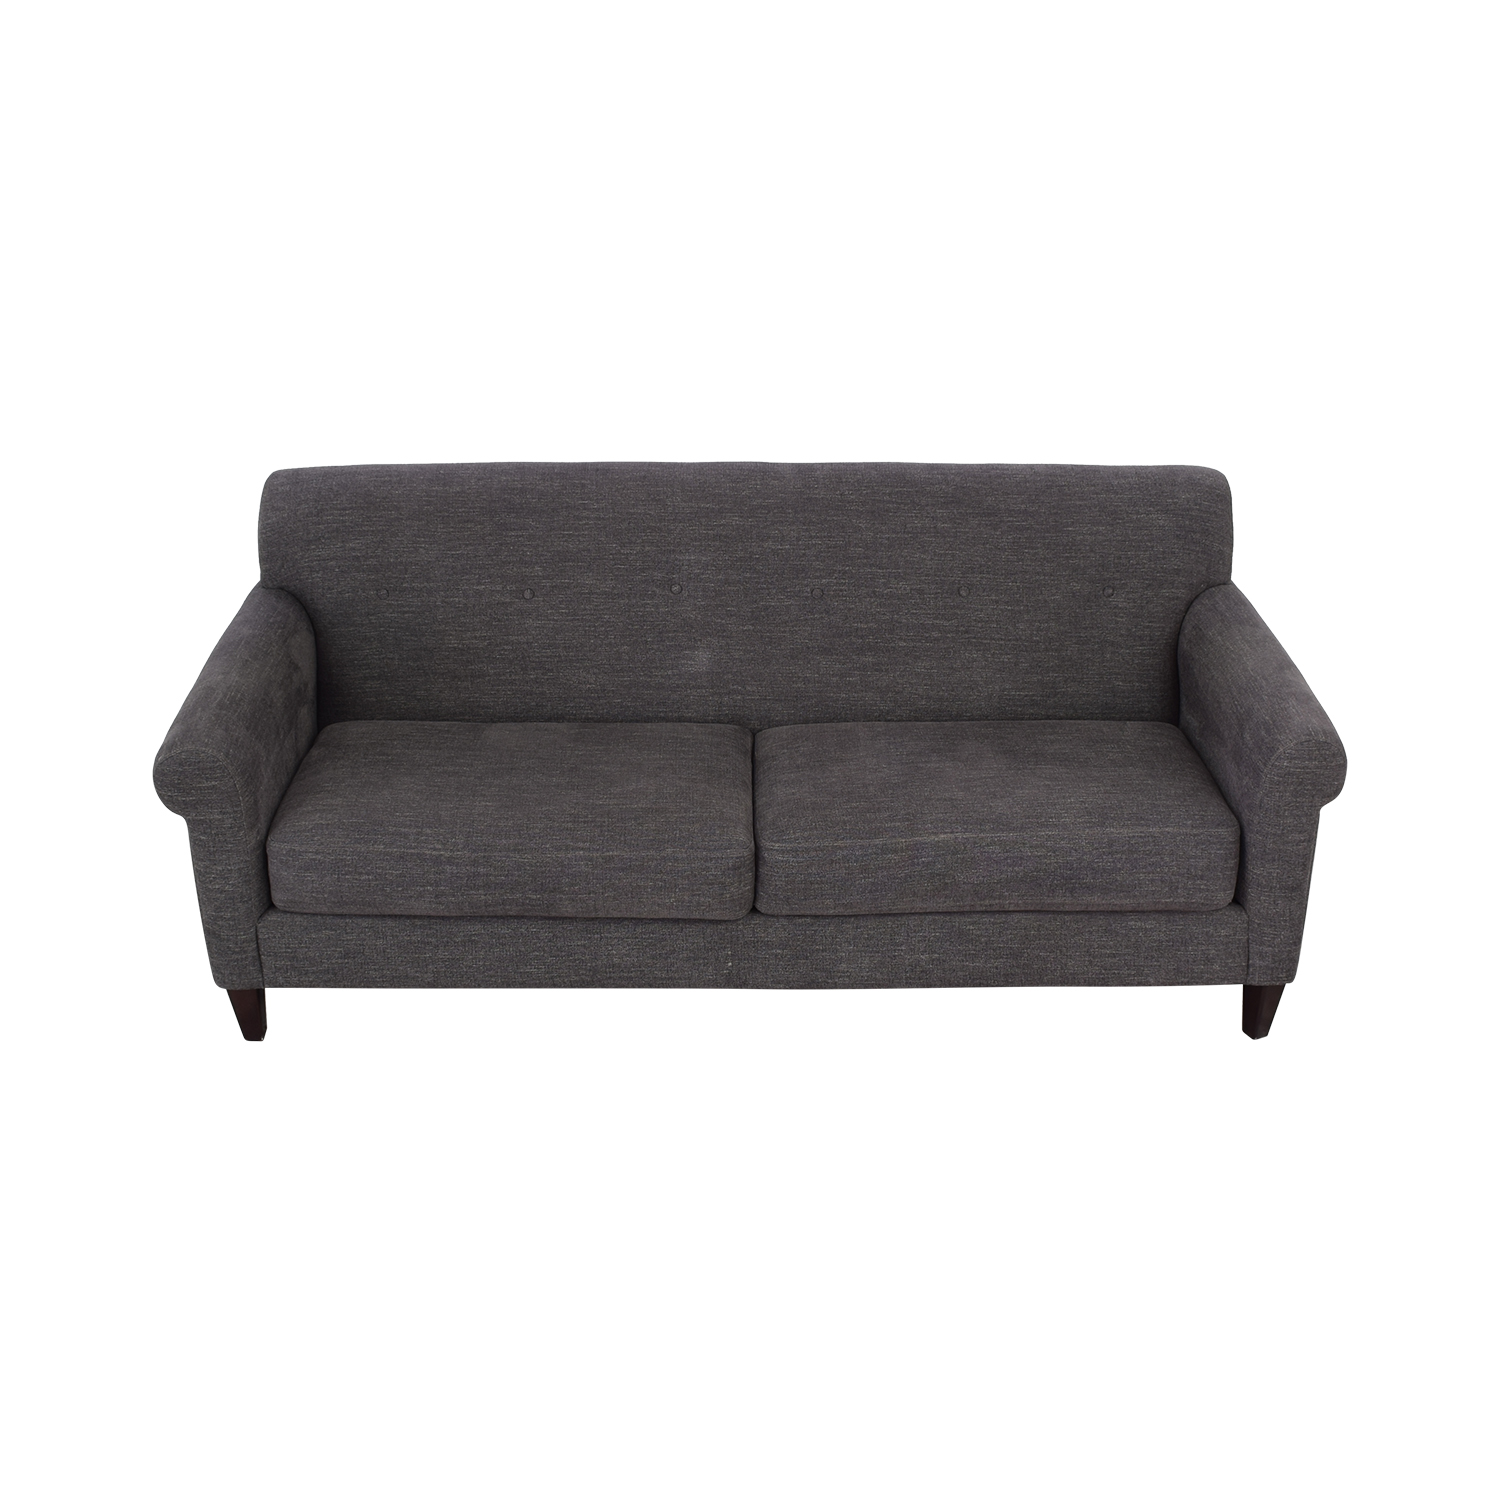 Bauhaus Furniture Bauhaus Furniture Sofa with Ottoman Classic Sofas